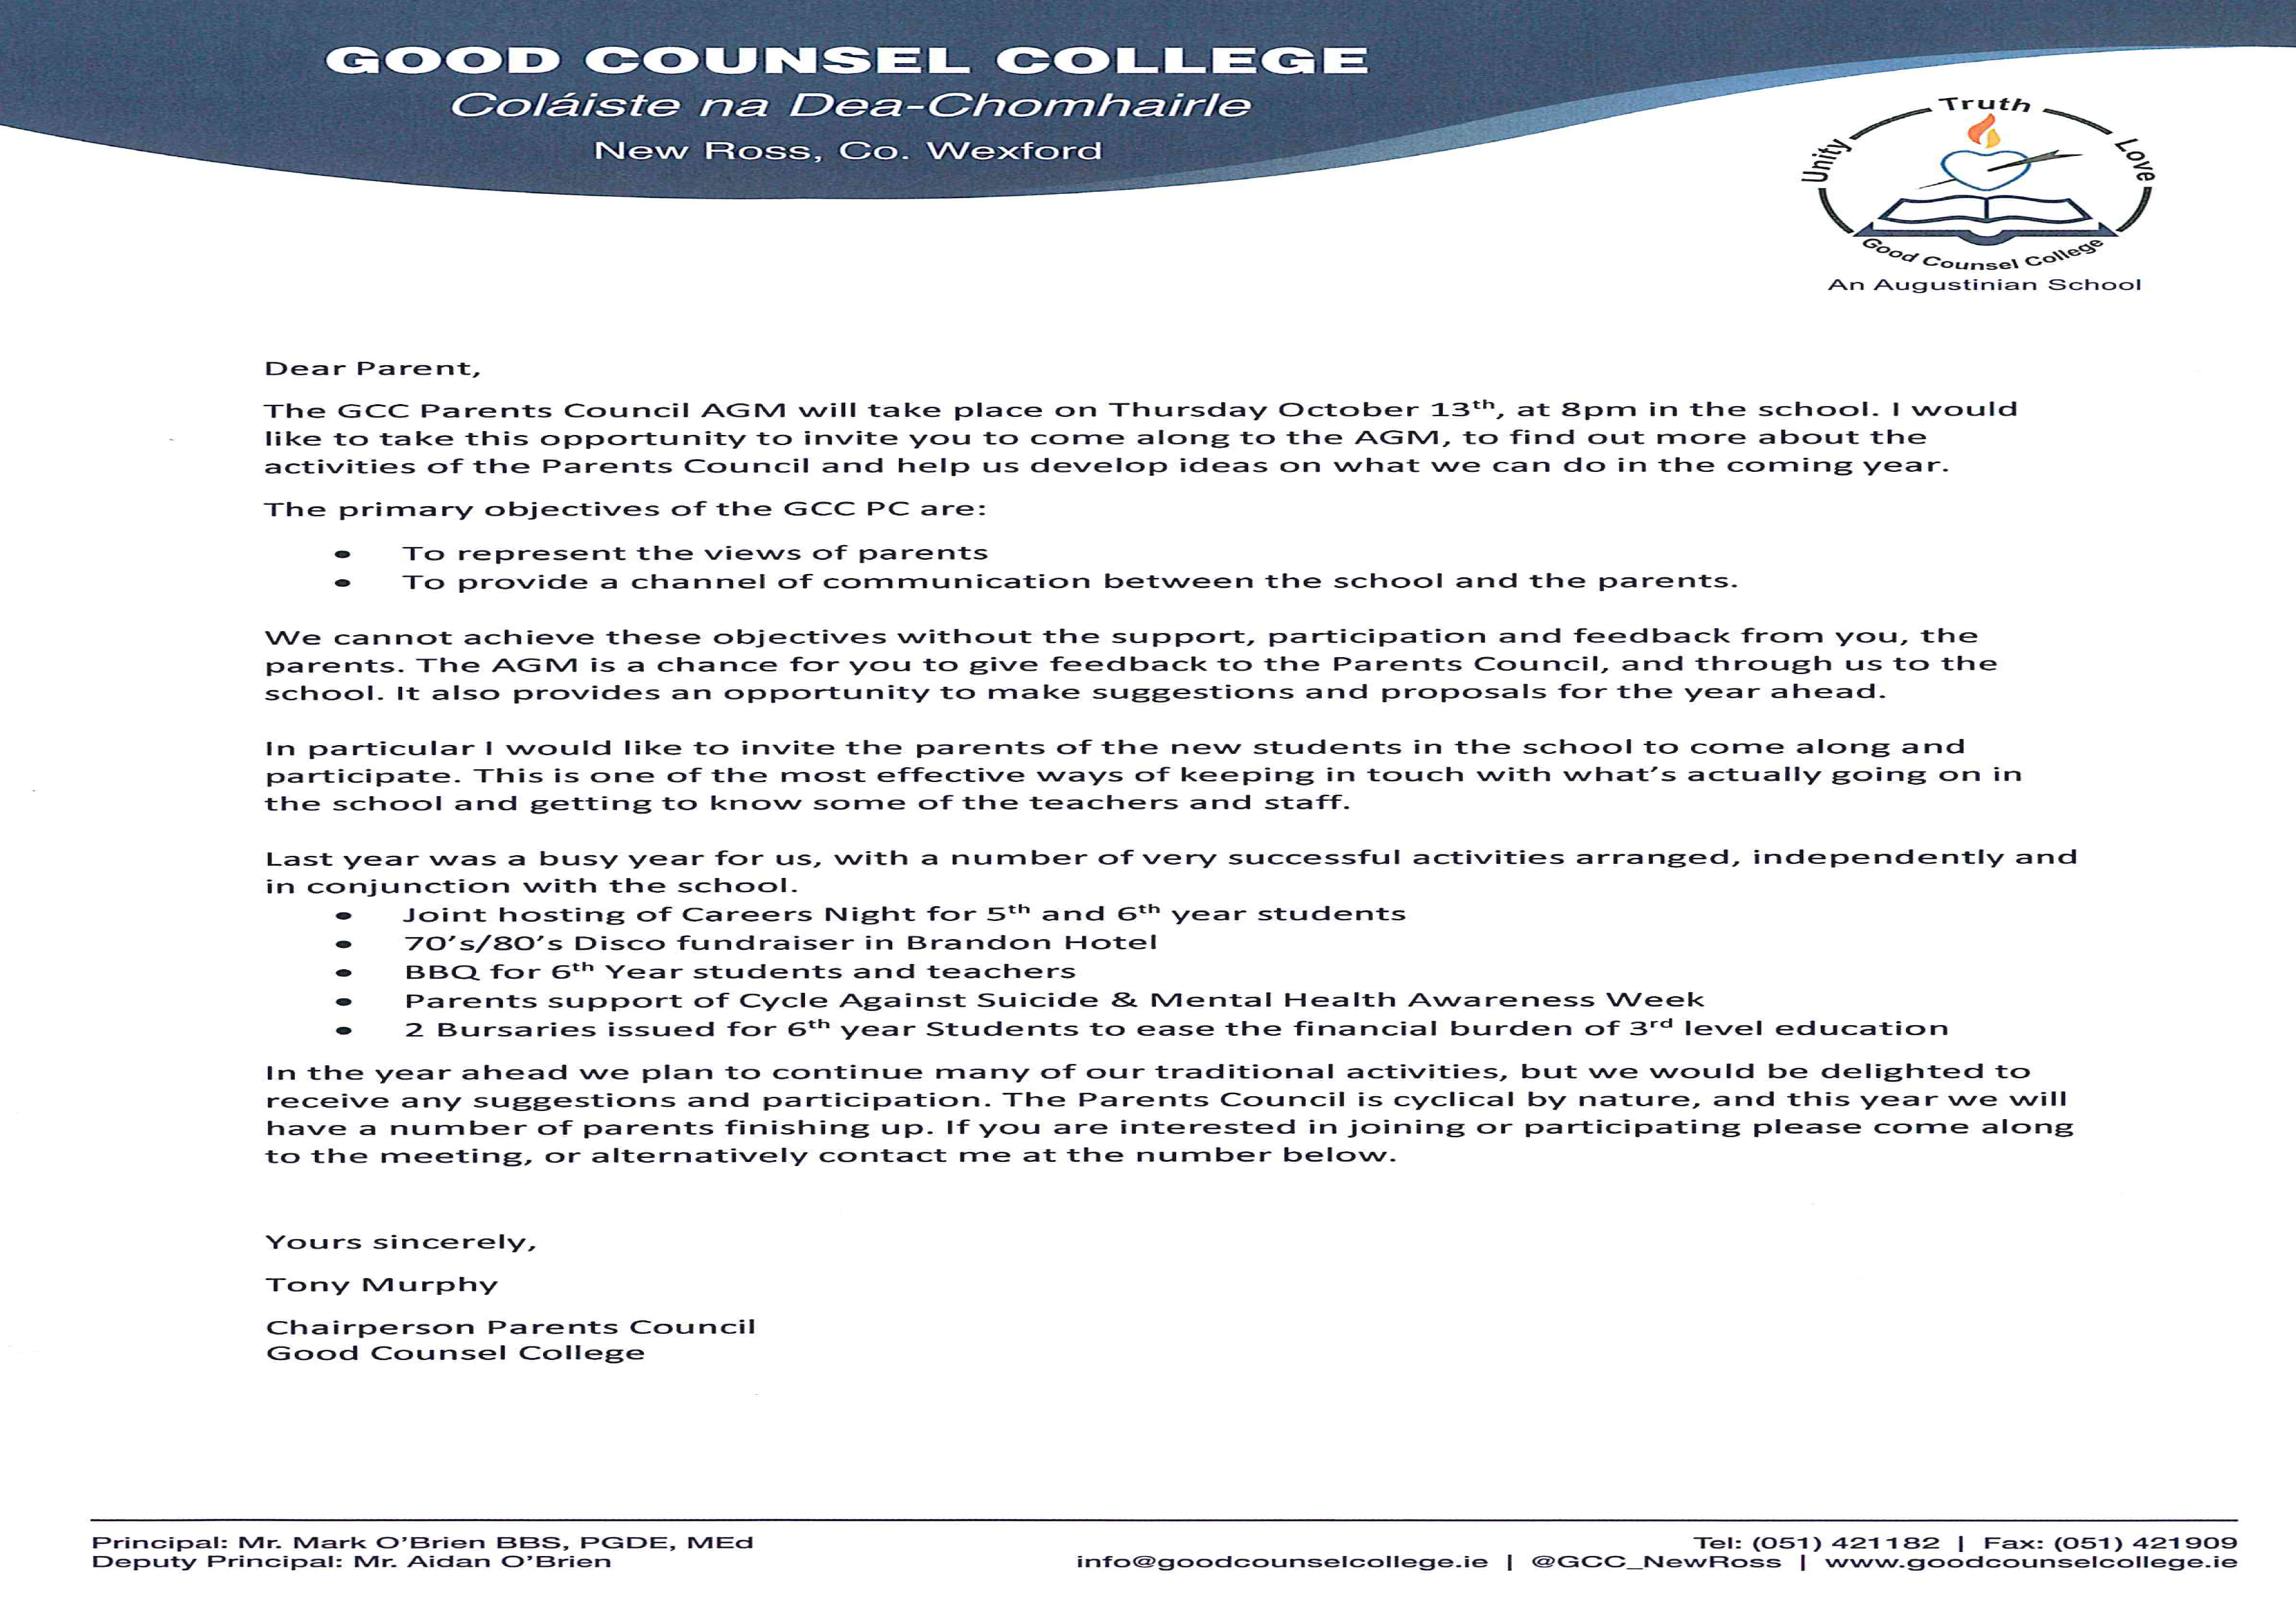 parents-council-letter